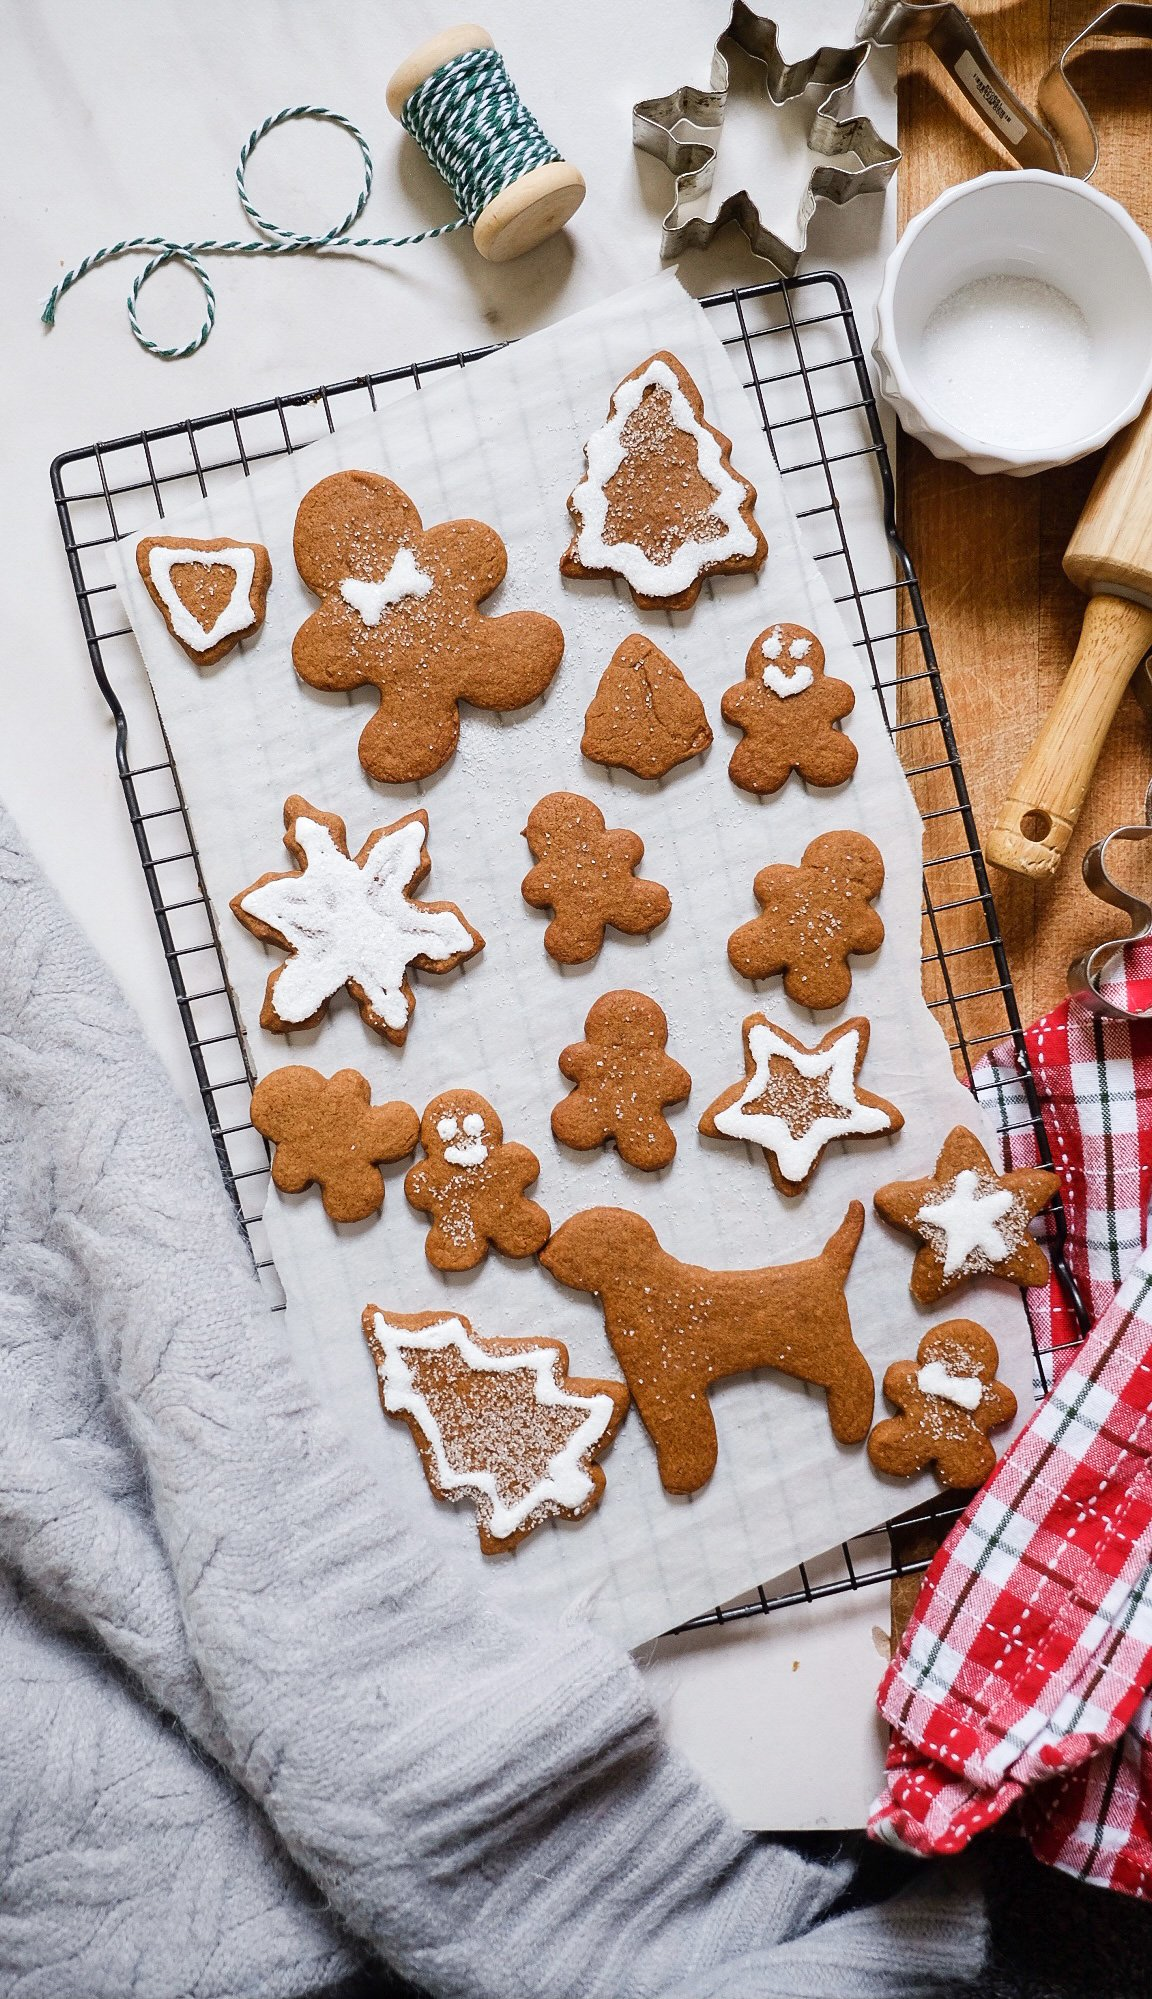 Lifestyle Blog Chocolate and Lace shares recipe for the best gingerbread cookies for cut out shapes.